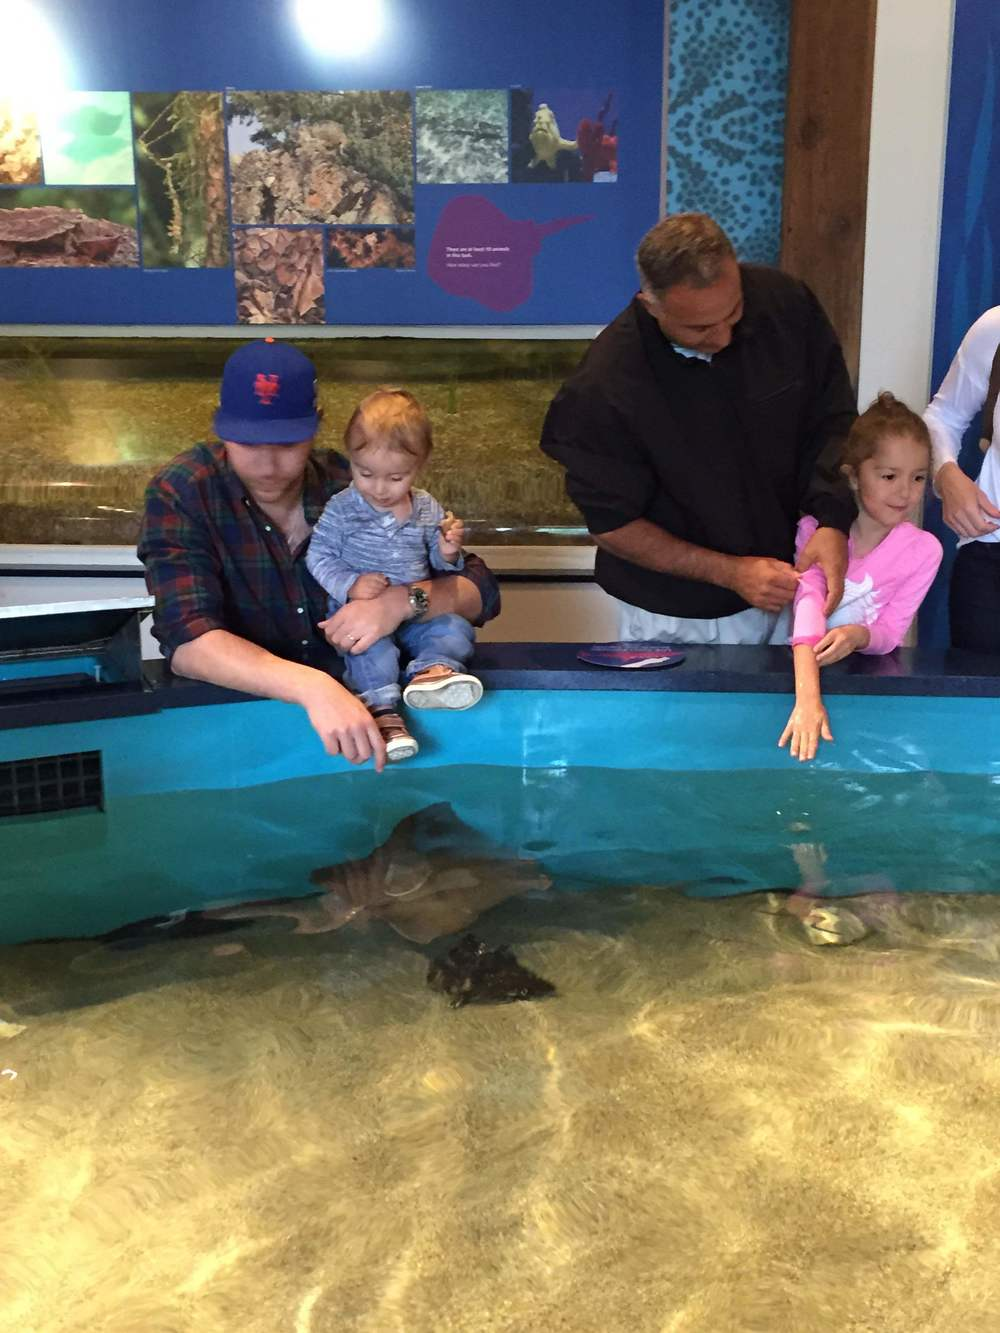 Touch sting rays